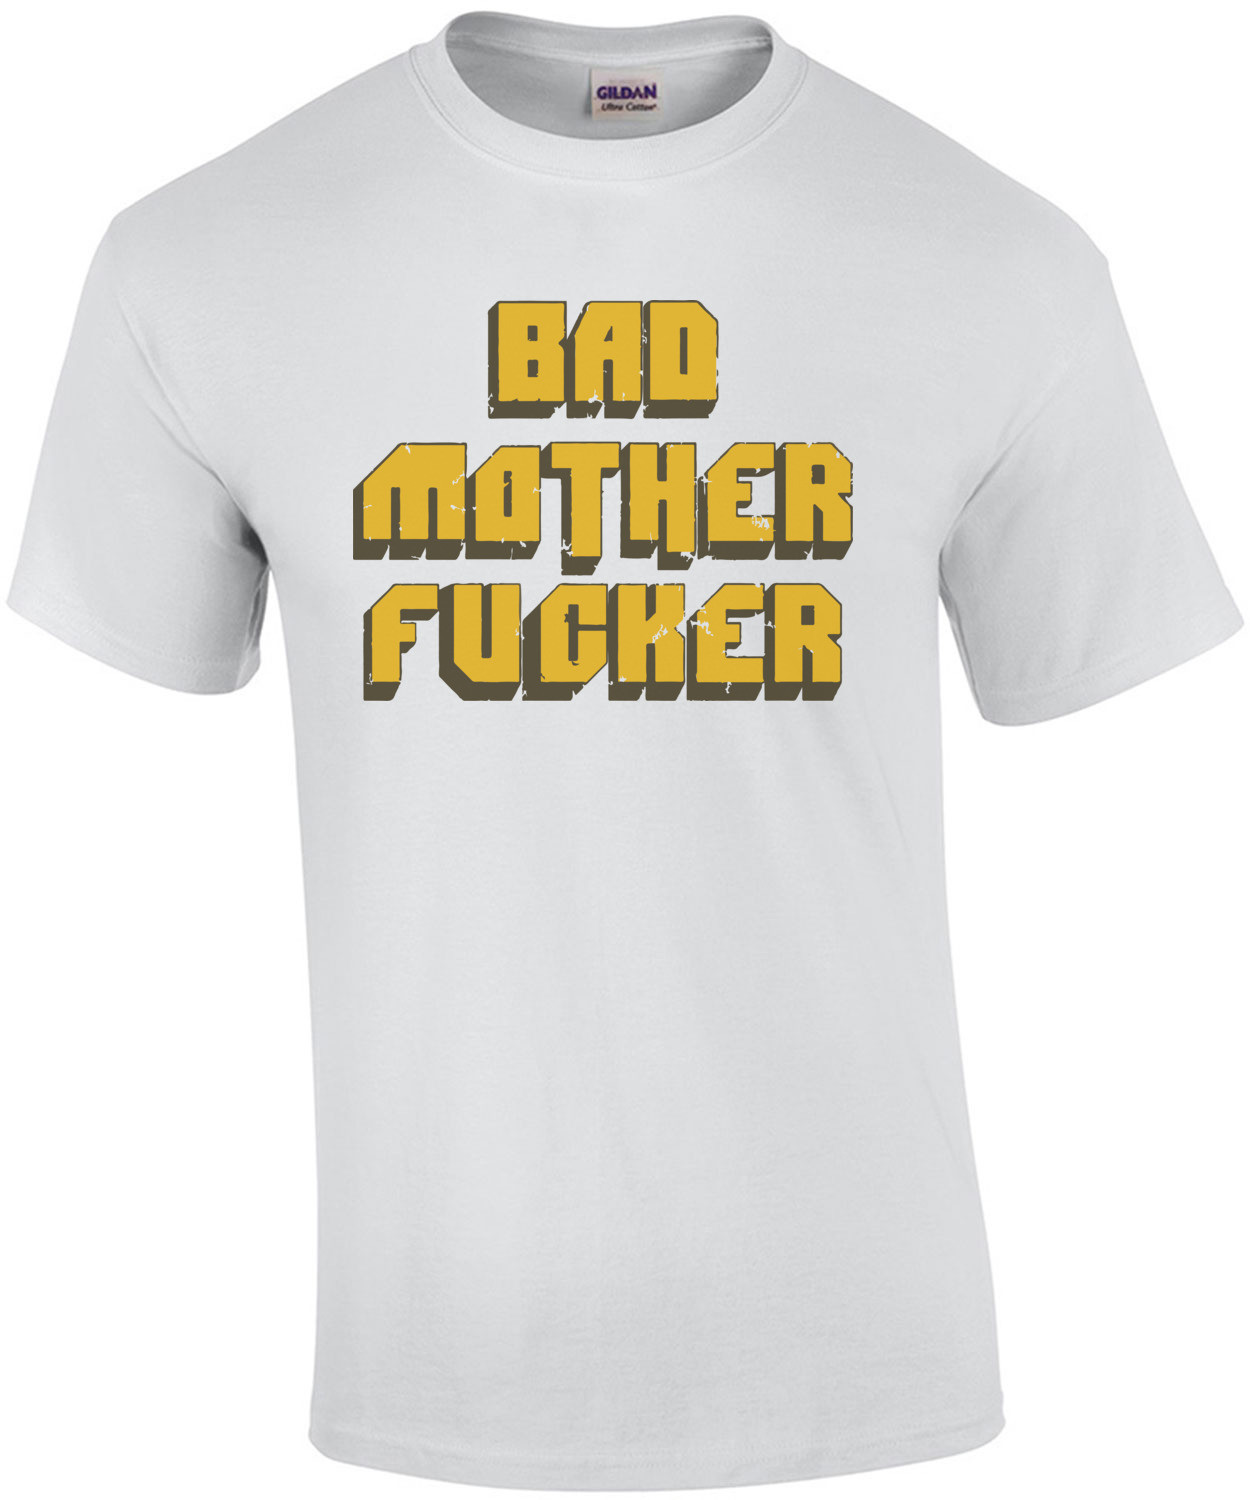 bad mother fucker - pulp fiction t-shirt